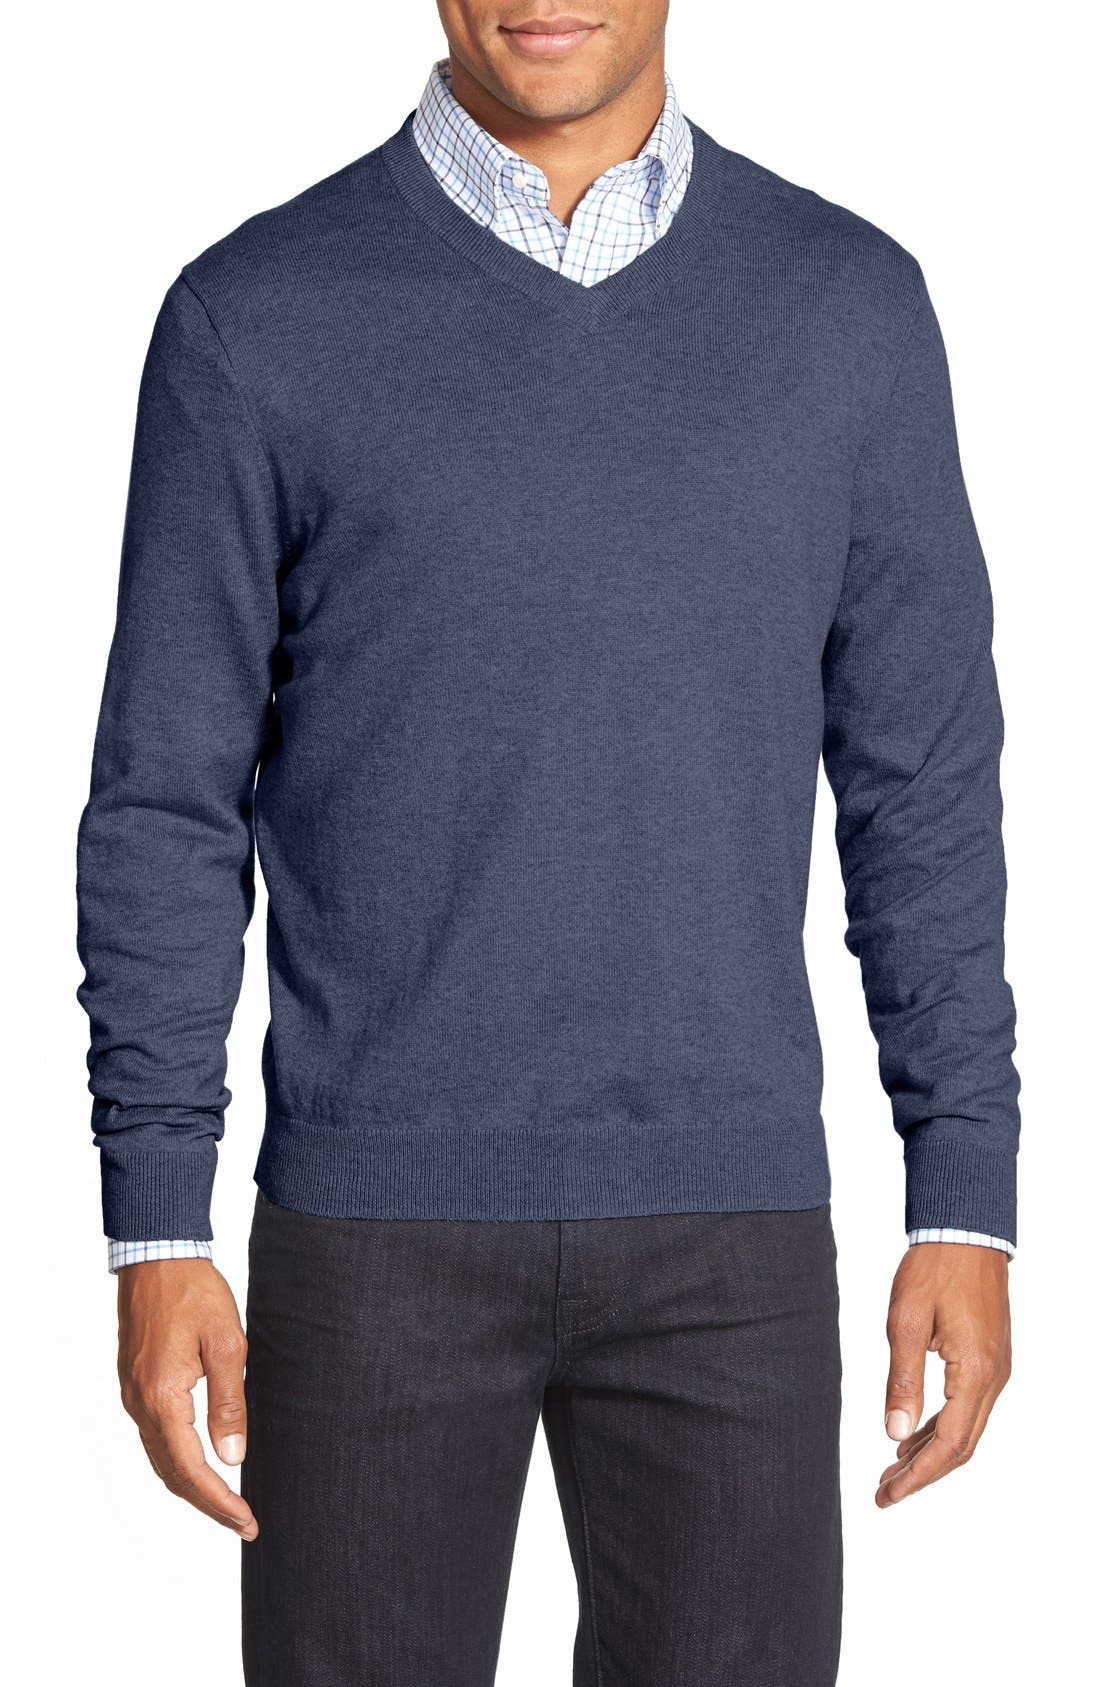 Nordstrom Men's Shop Cotton & Cashmere V-Neck Sweater (Regular & Tall)